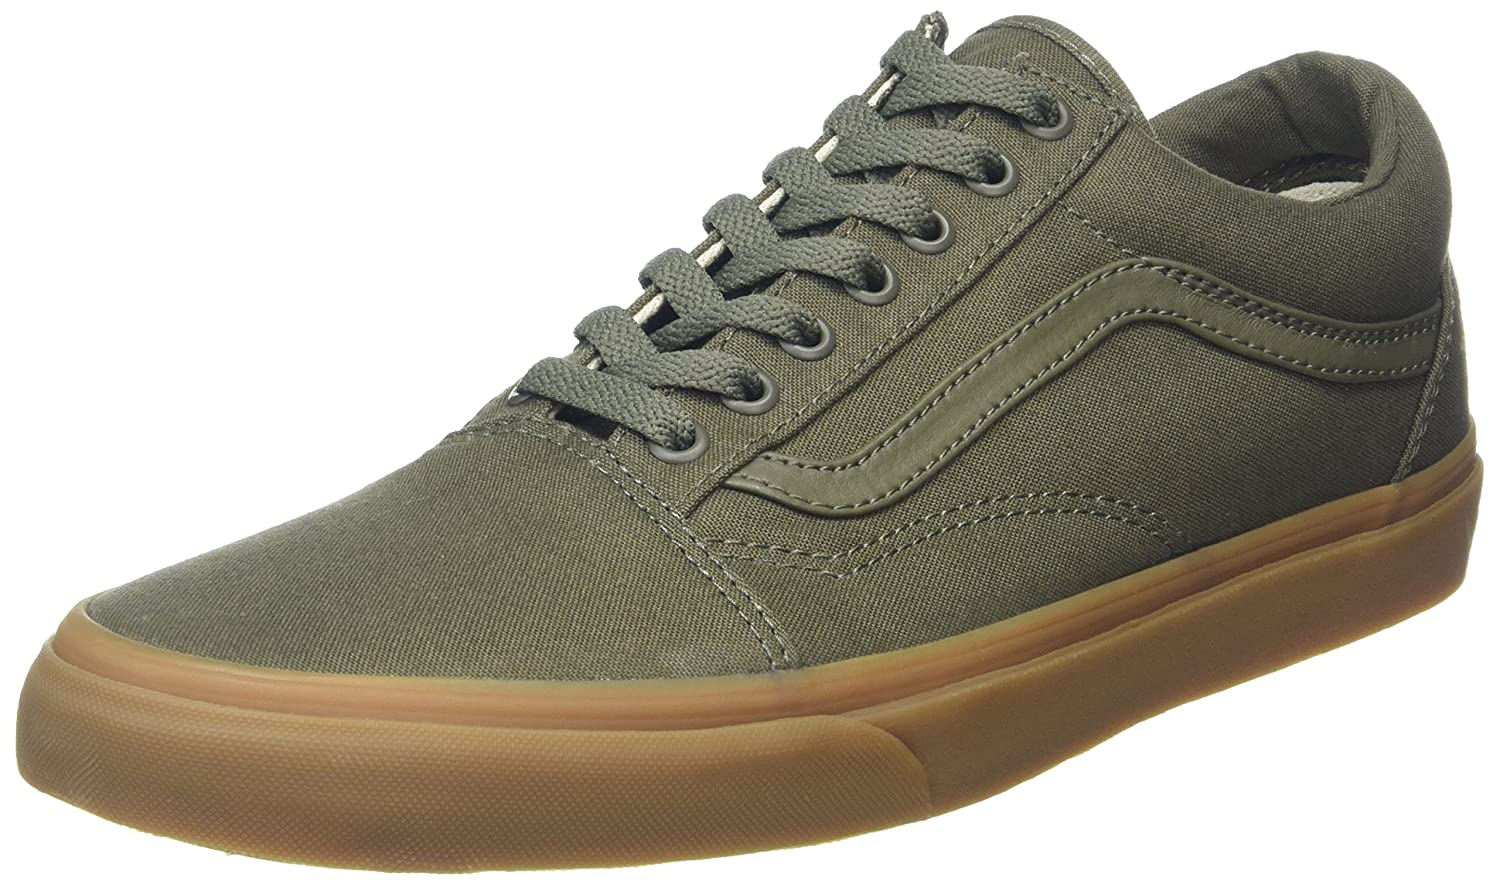 [バンズ] VANS OLD SKOOL B01CRB6H4C 9.5 B(M) US Women / 8 D(M) US Men|(Canvas Gum) Ivy Green/Light Gum (Canvas Gum) Ivy Green/Light Gum 9.5 B(M) US Women / 8 D(M) US Men